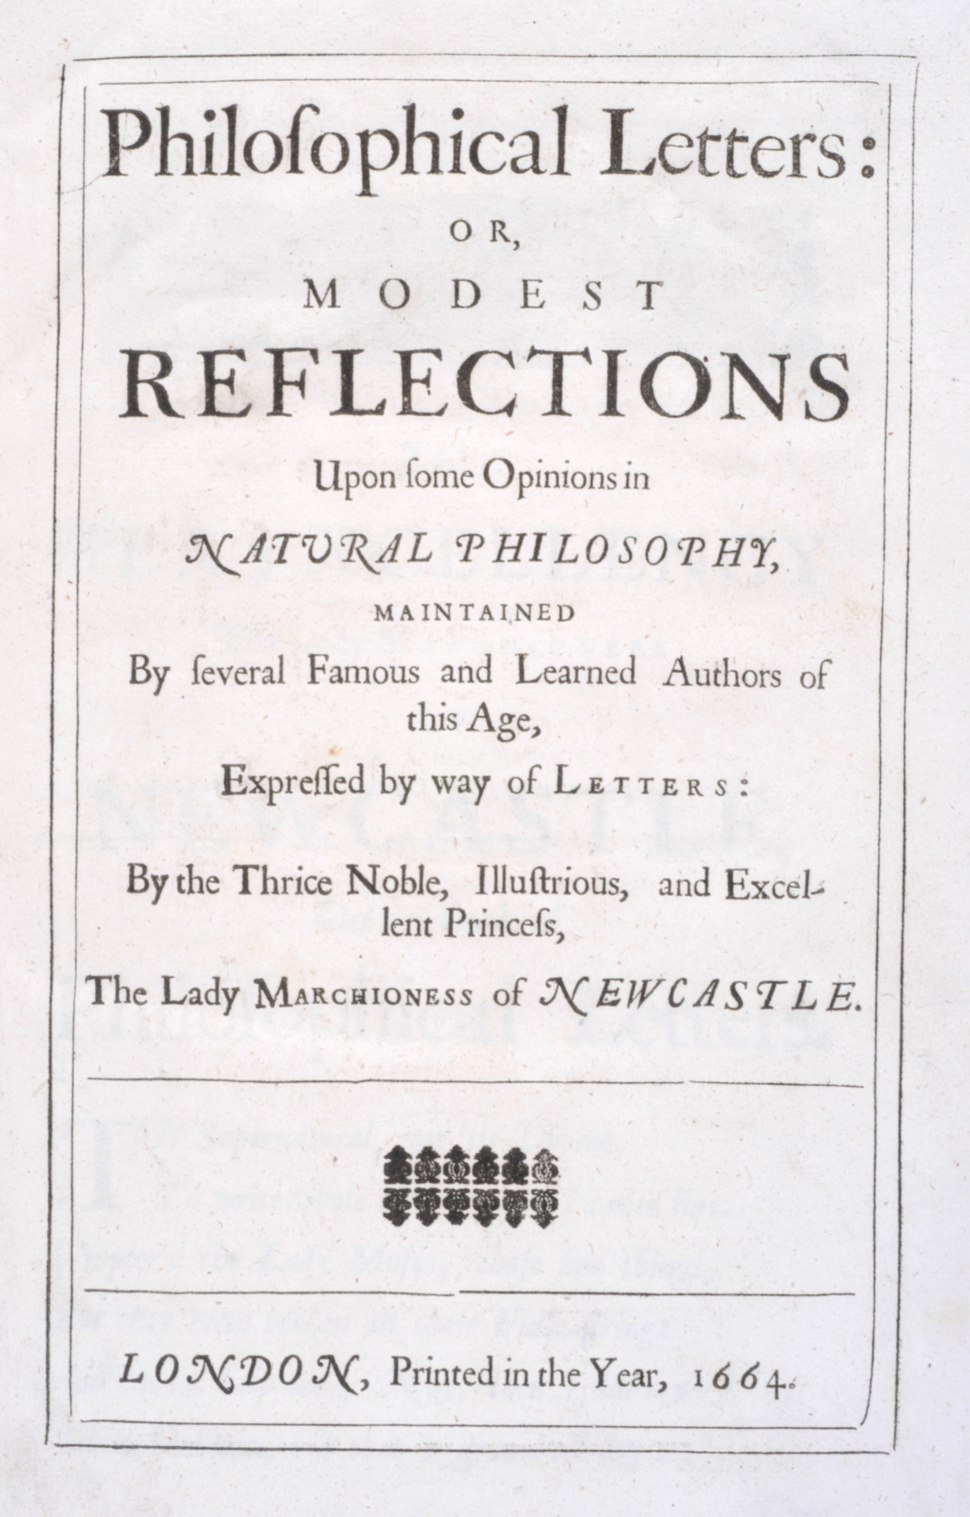 Margaret Newcastle 1664 Philosophical letters RGNb10347550.01.tp